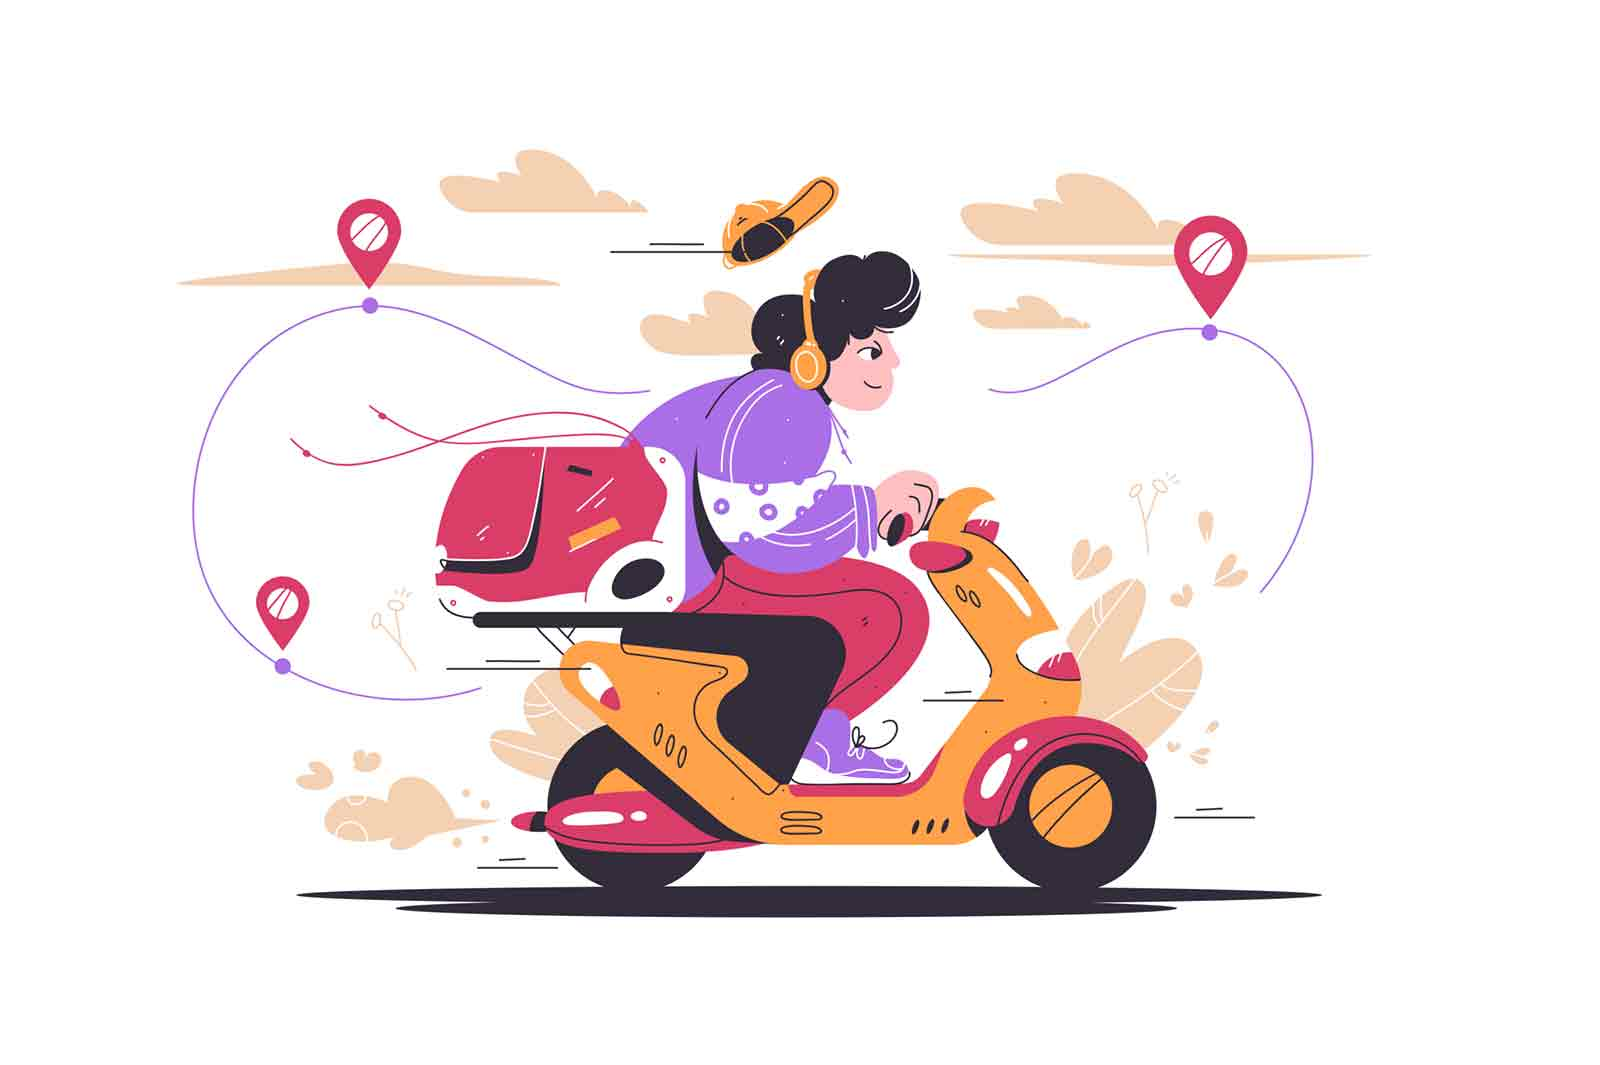 Delivery man riding motorcycle vehicle vector illustration. Online order tracking flat style. Online service with delivery, safety during covid19 epidemic concept. Isolated on white background